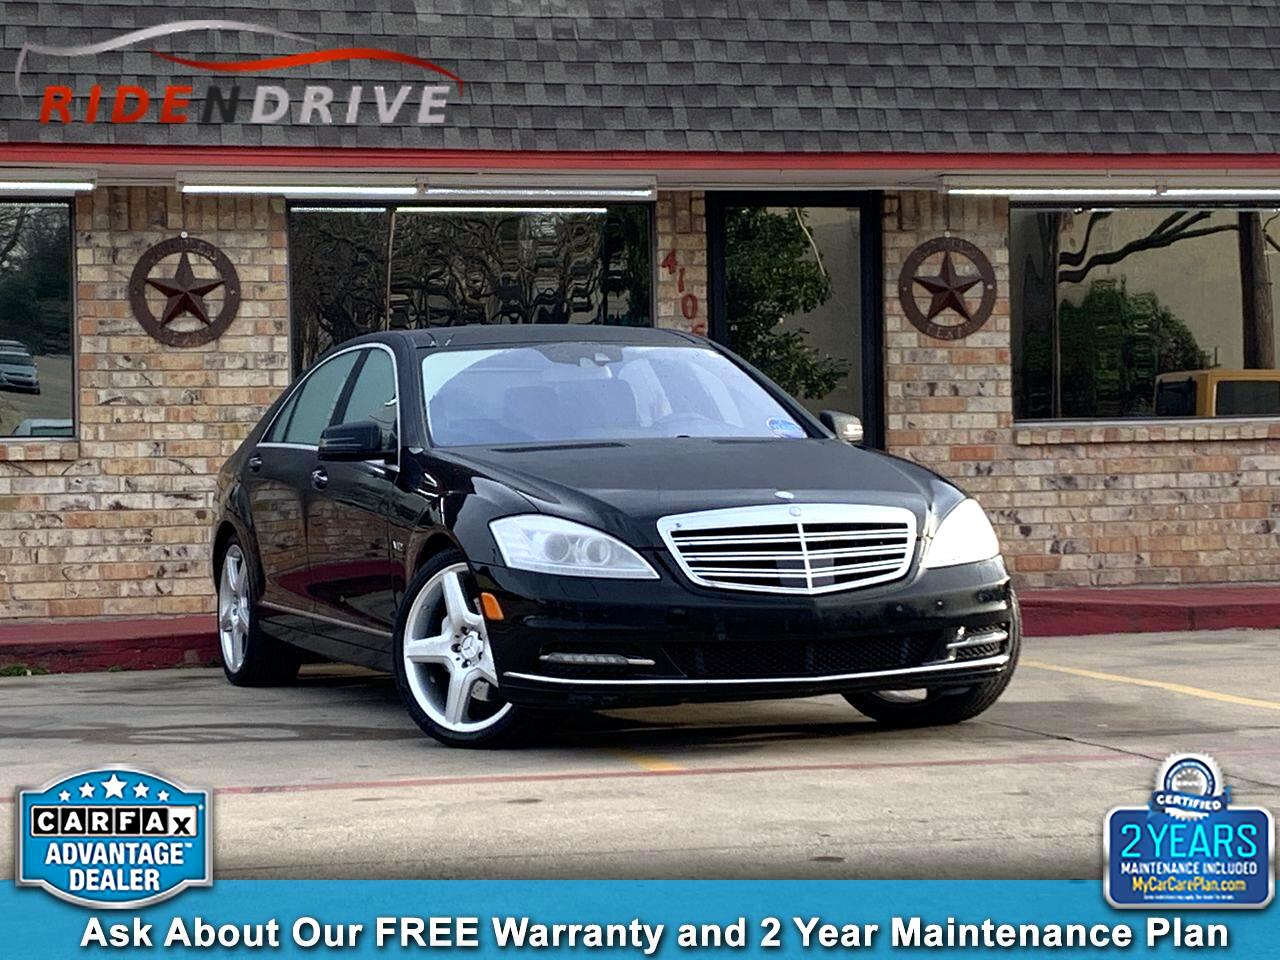 2012 Mercedes-Benz S-Class 4dr Sdn S 600 RWD